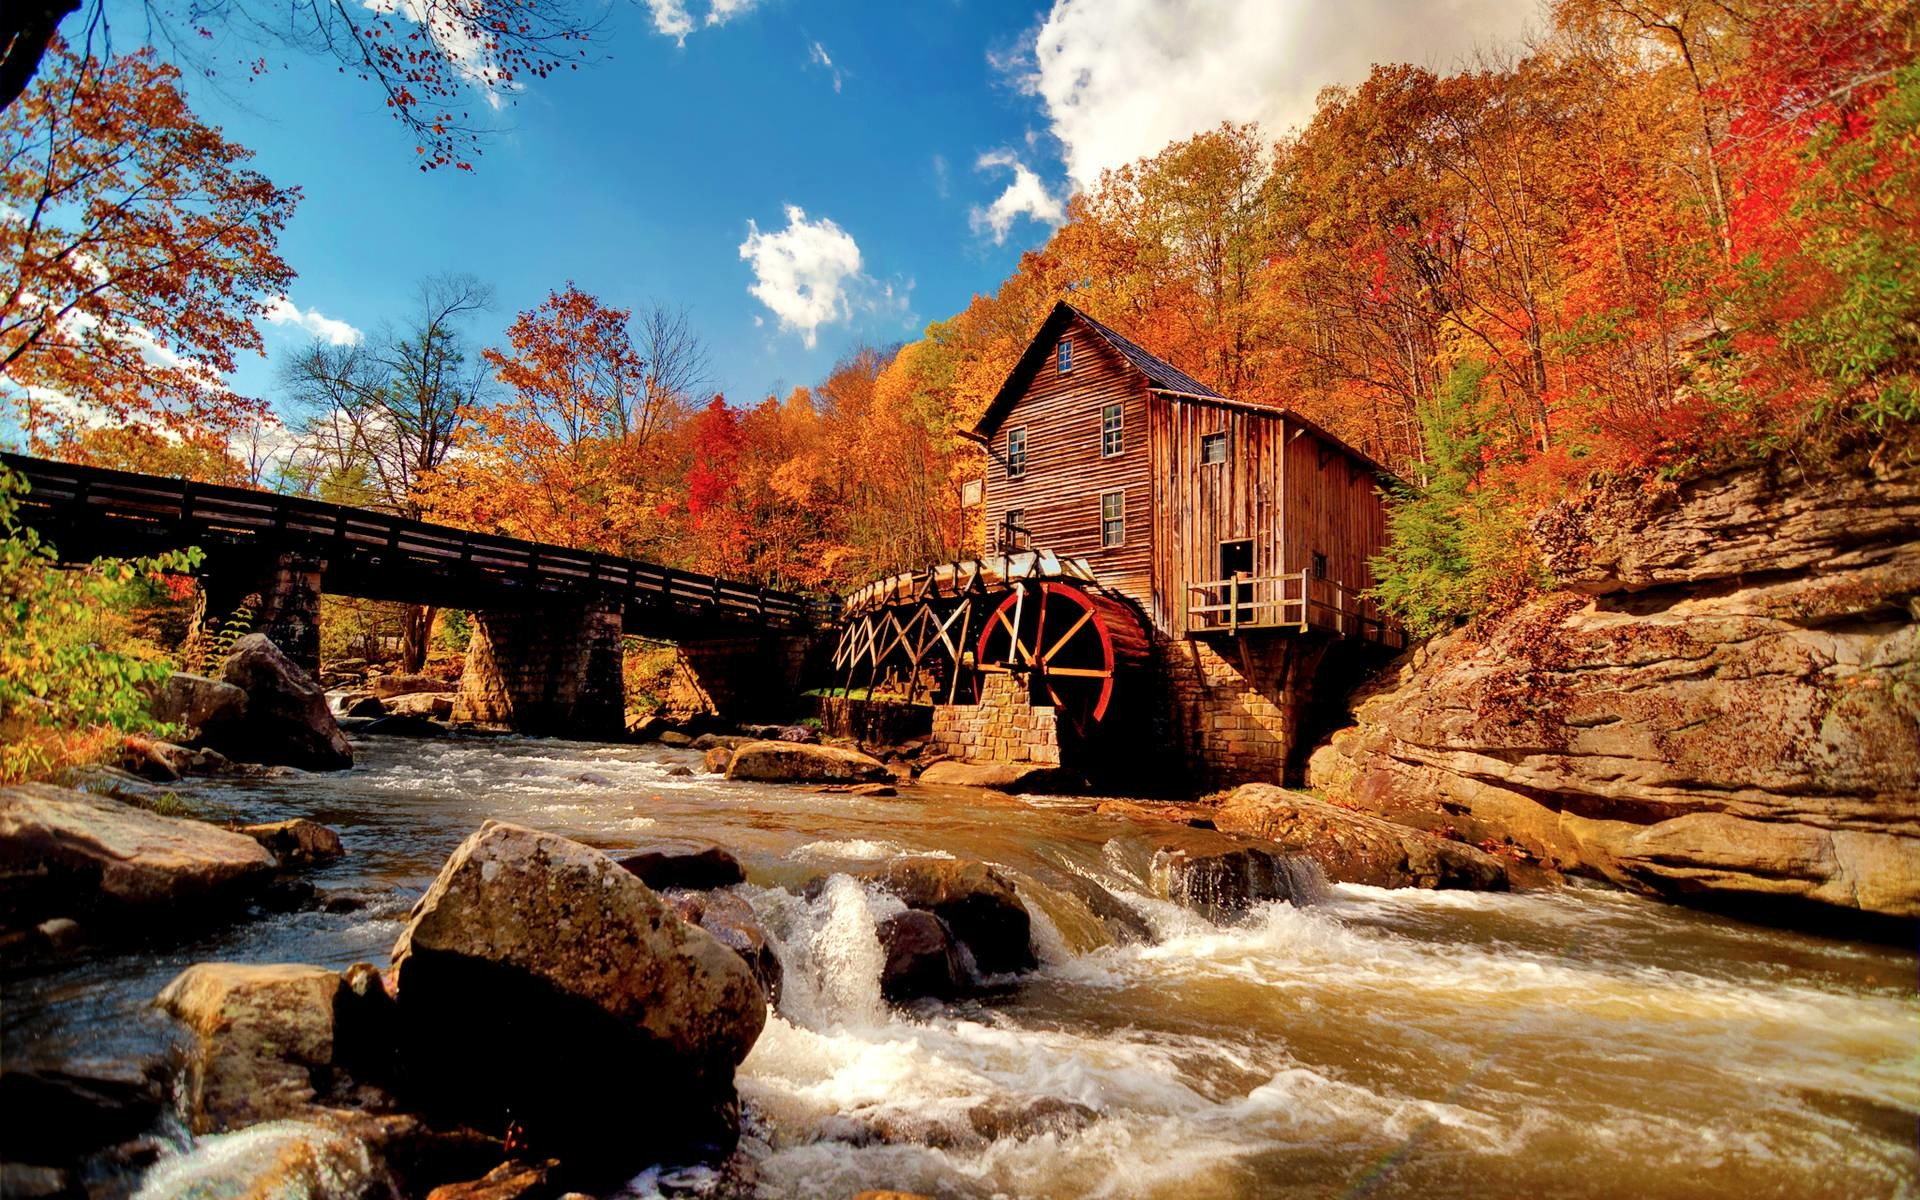 … fall foliage wallpapers for desktop wallpaper cave …